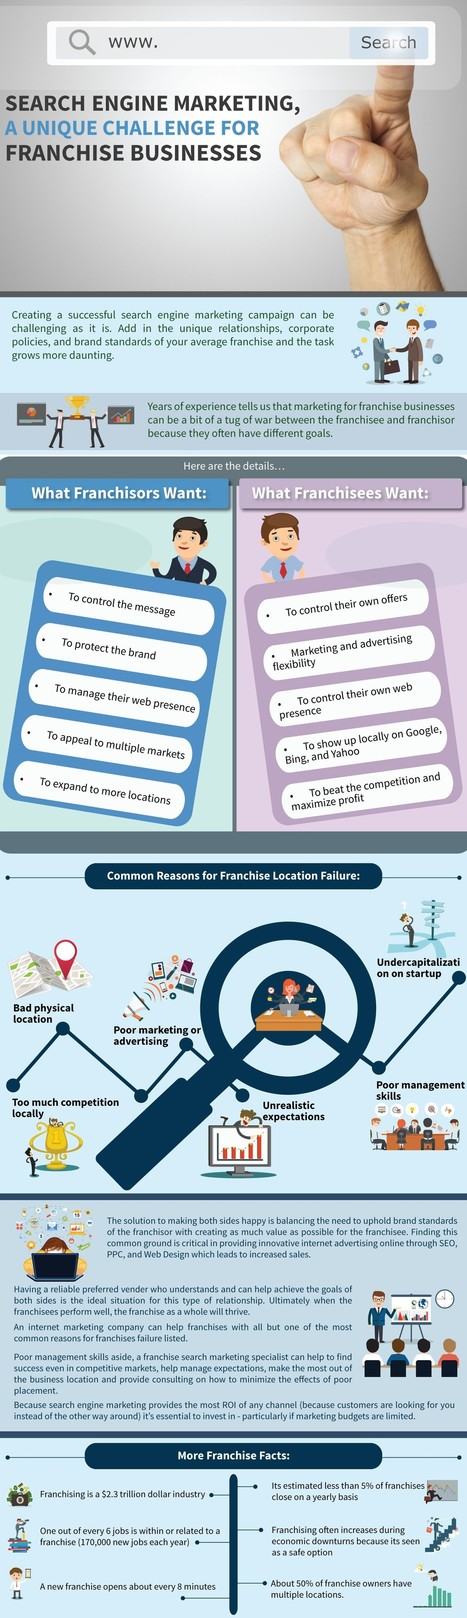 10 Challenges Businesses Face with Search Engine Marketing Campaigns | All Infographics | Scoop.it